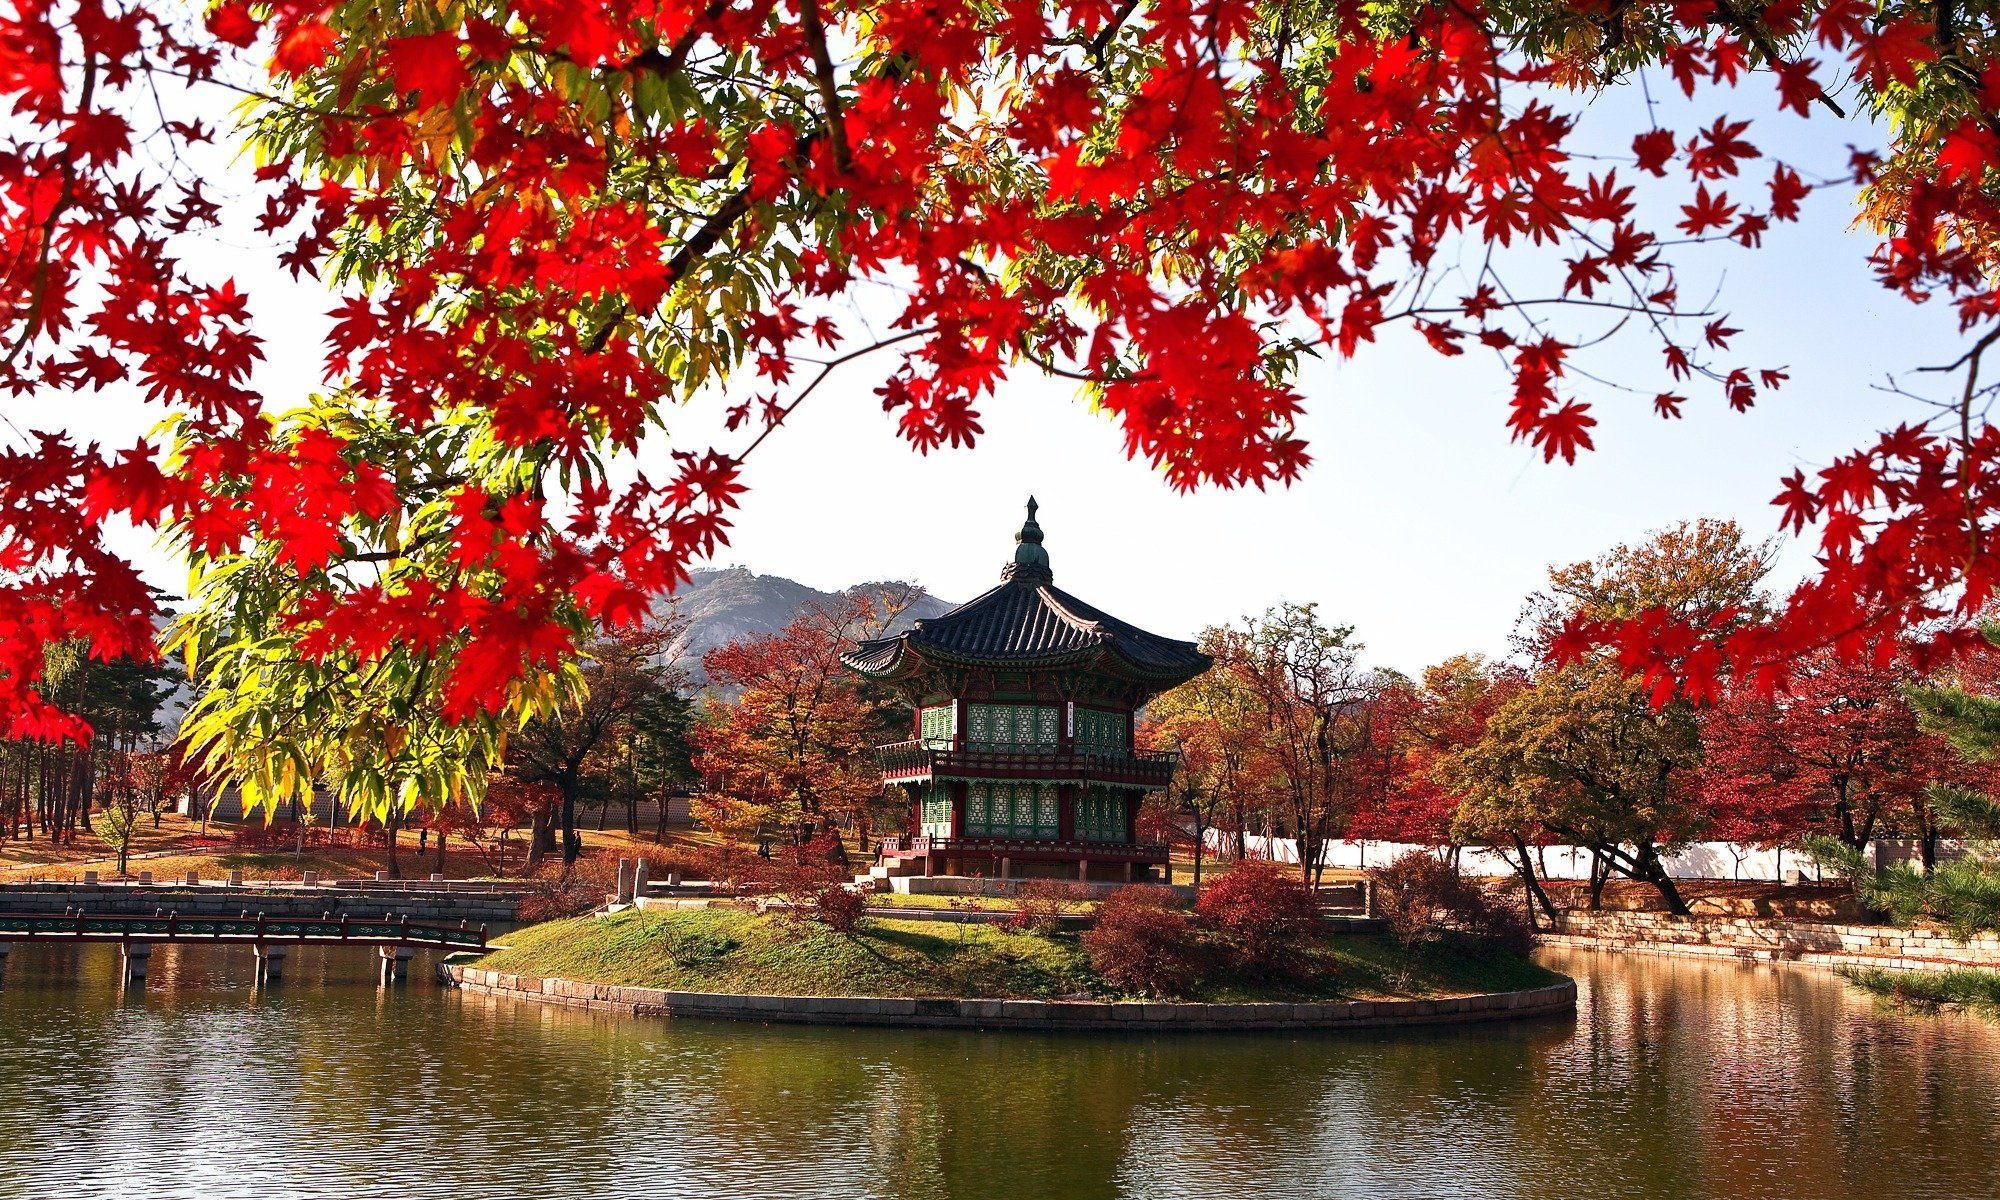 From the book where you might see the beautiful autumn leaves - South Korea Is A Great Place For An Autumn Holiday There Are Plenty Of Spots